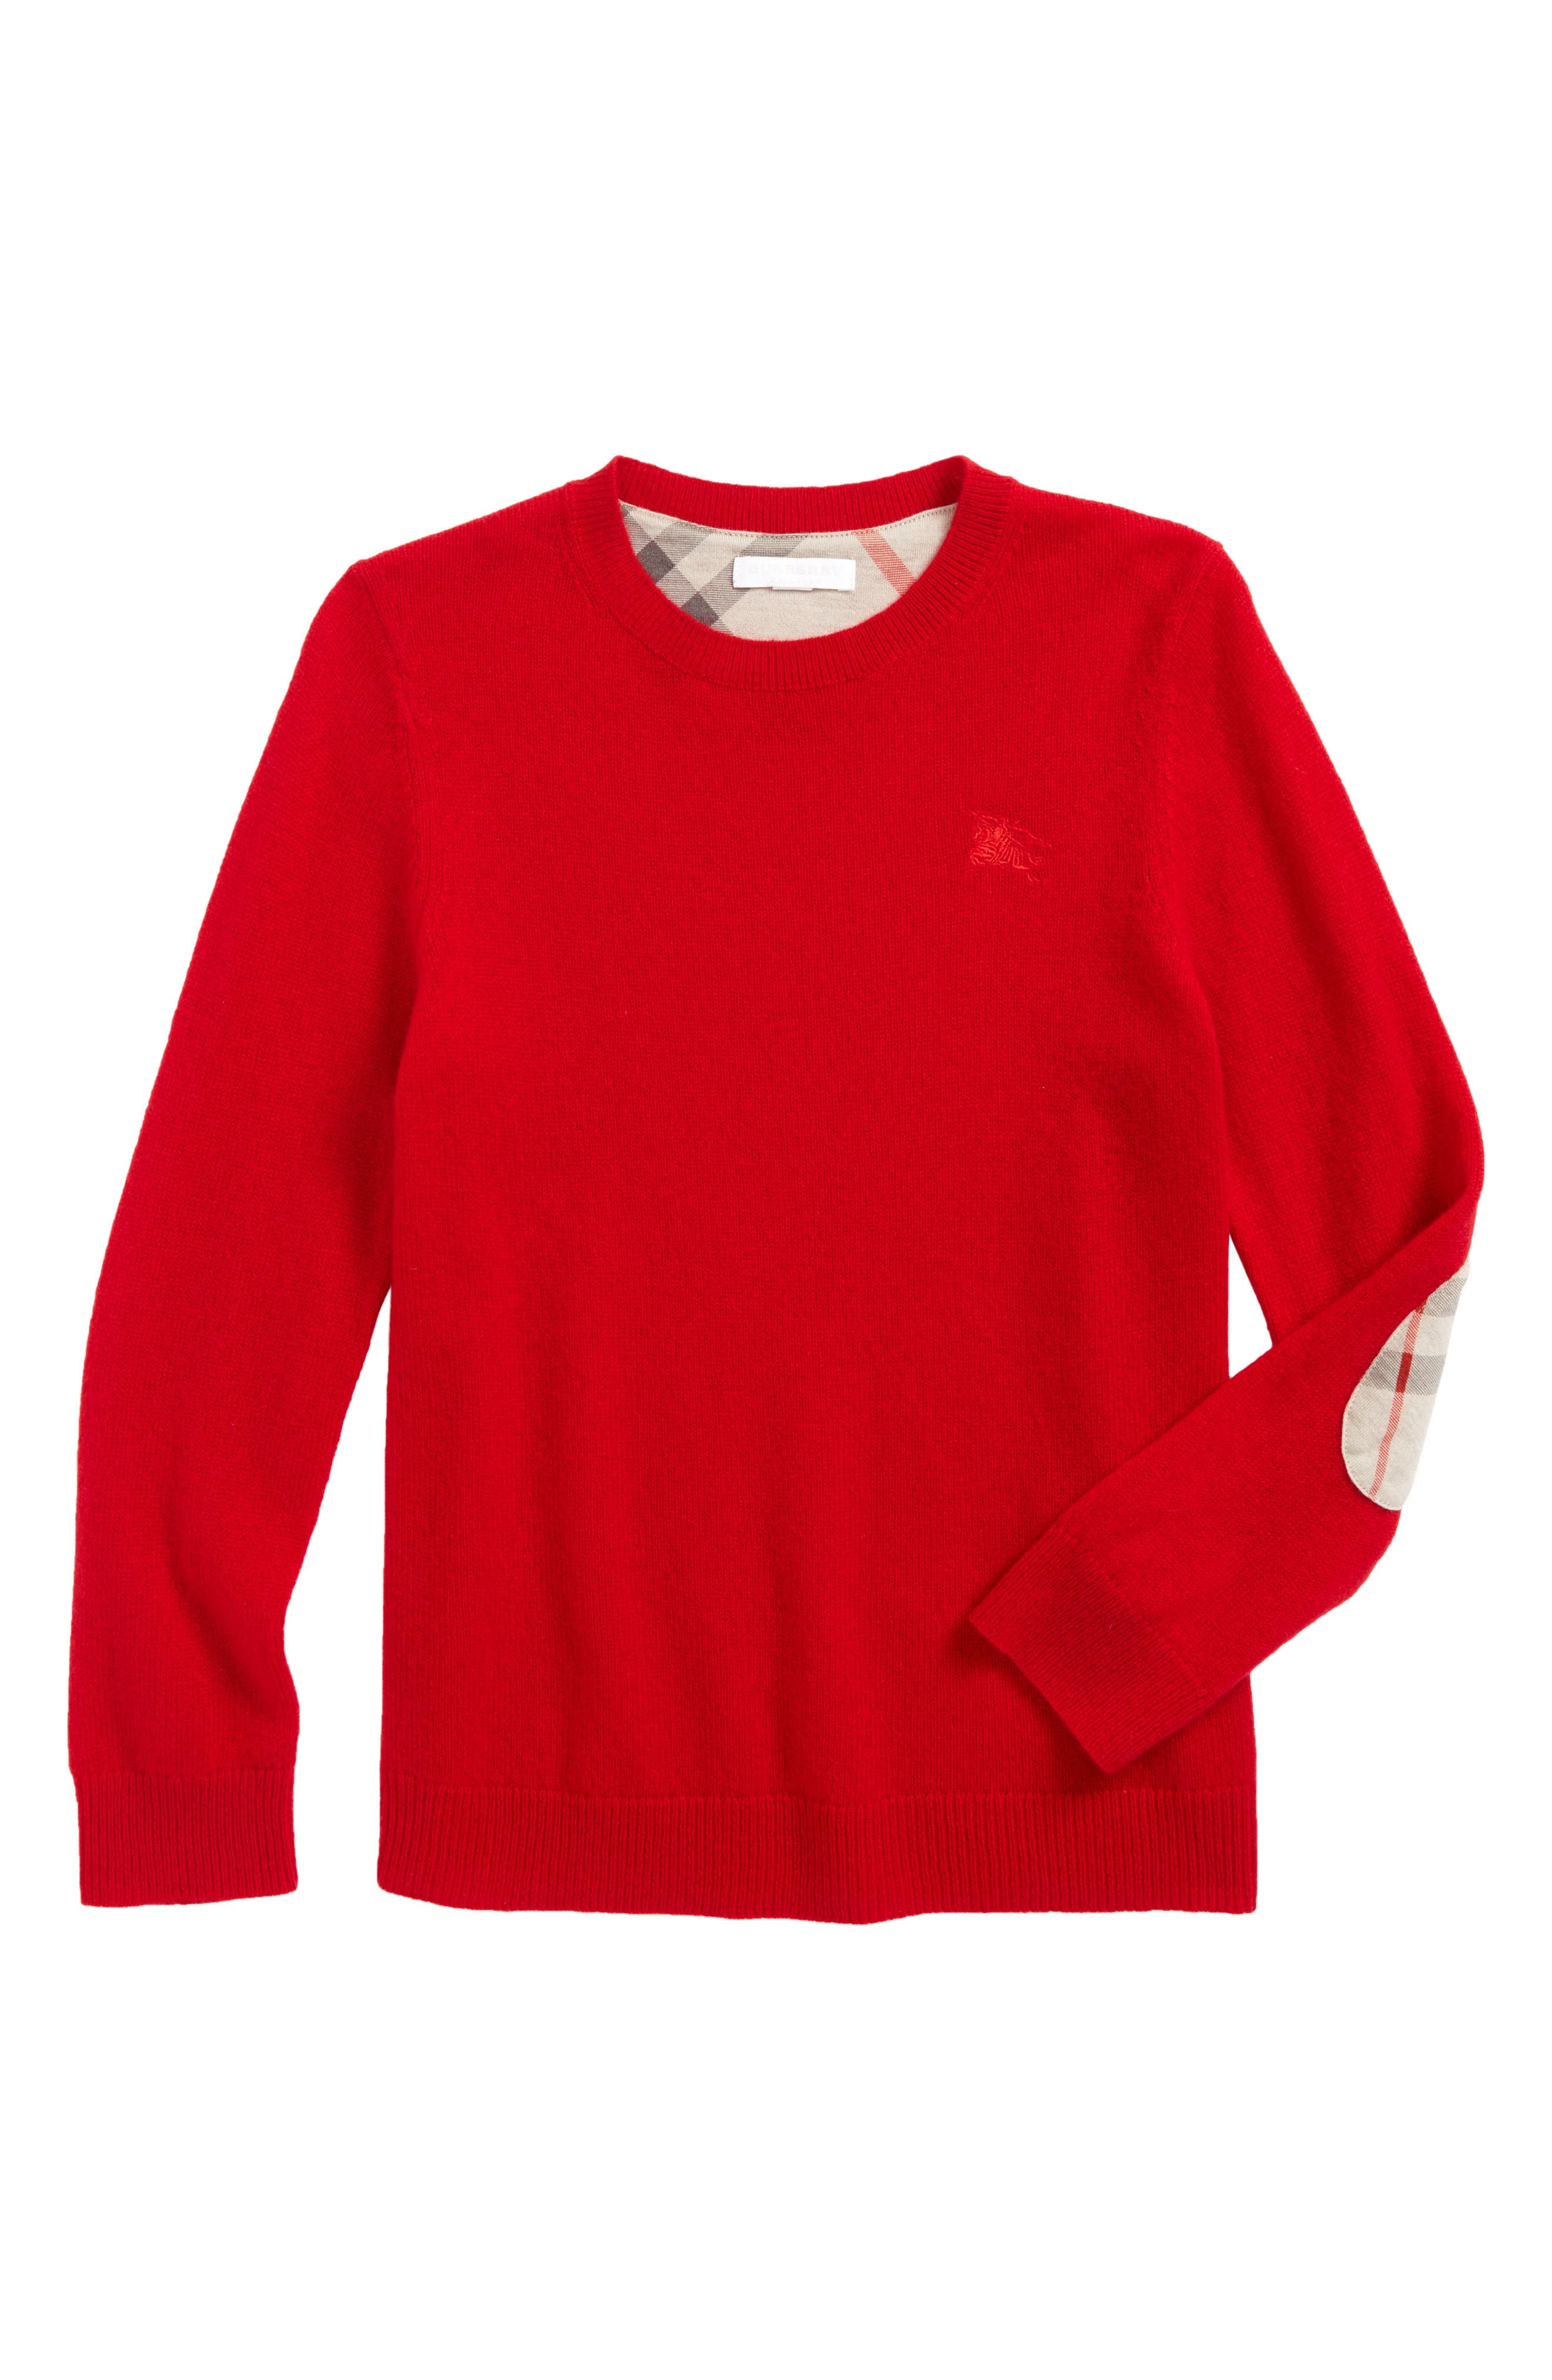 Durham Cashmere Sweater,                         Main,                         color, Parade Red